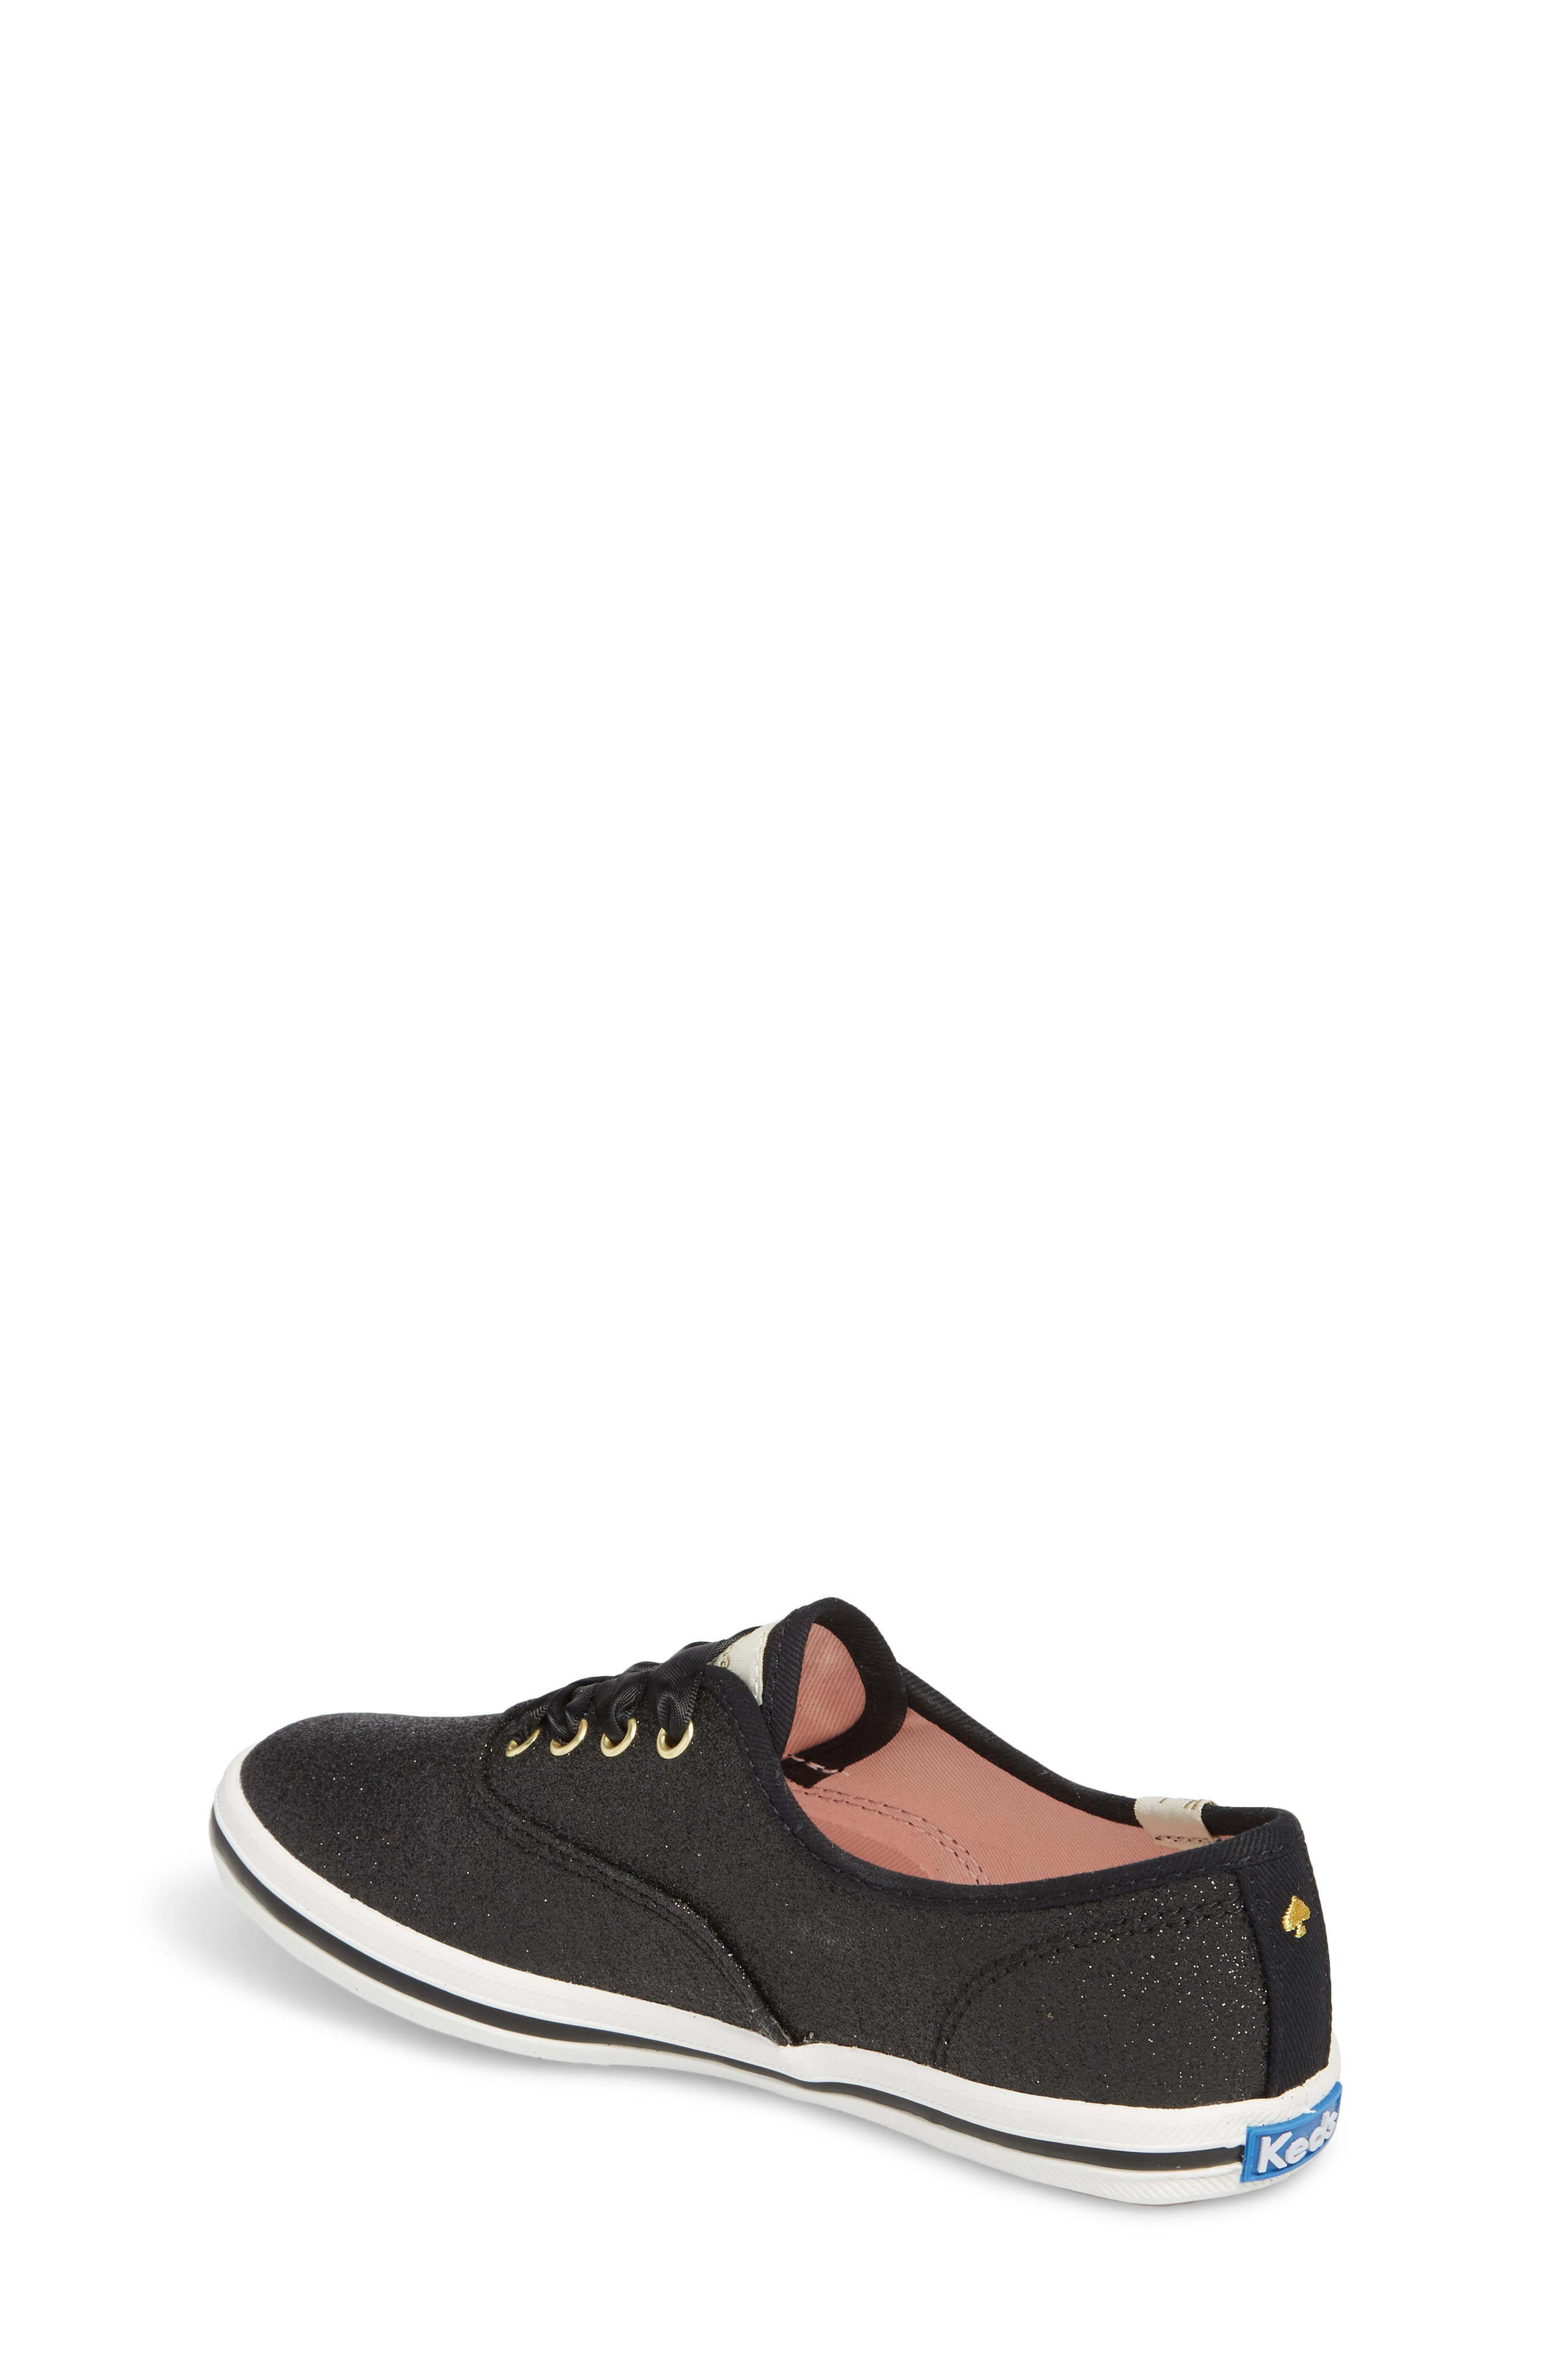 KEDS<SUP>®</SUP>, x kate spade new york Champion Glitter Sneaker, Alternate thumbnail 2, color, BLACK